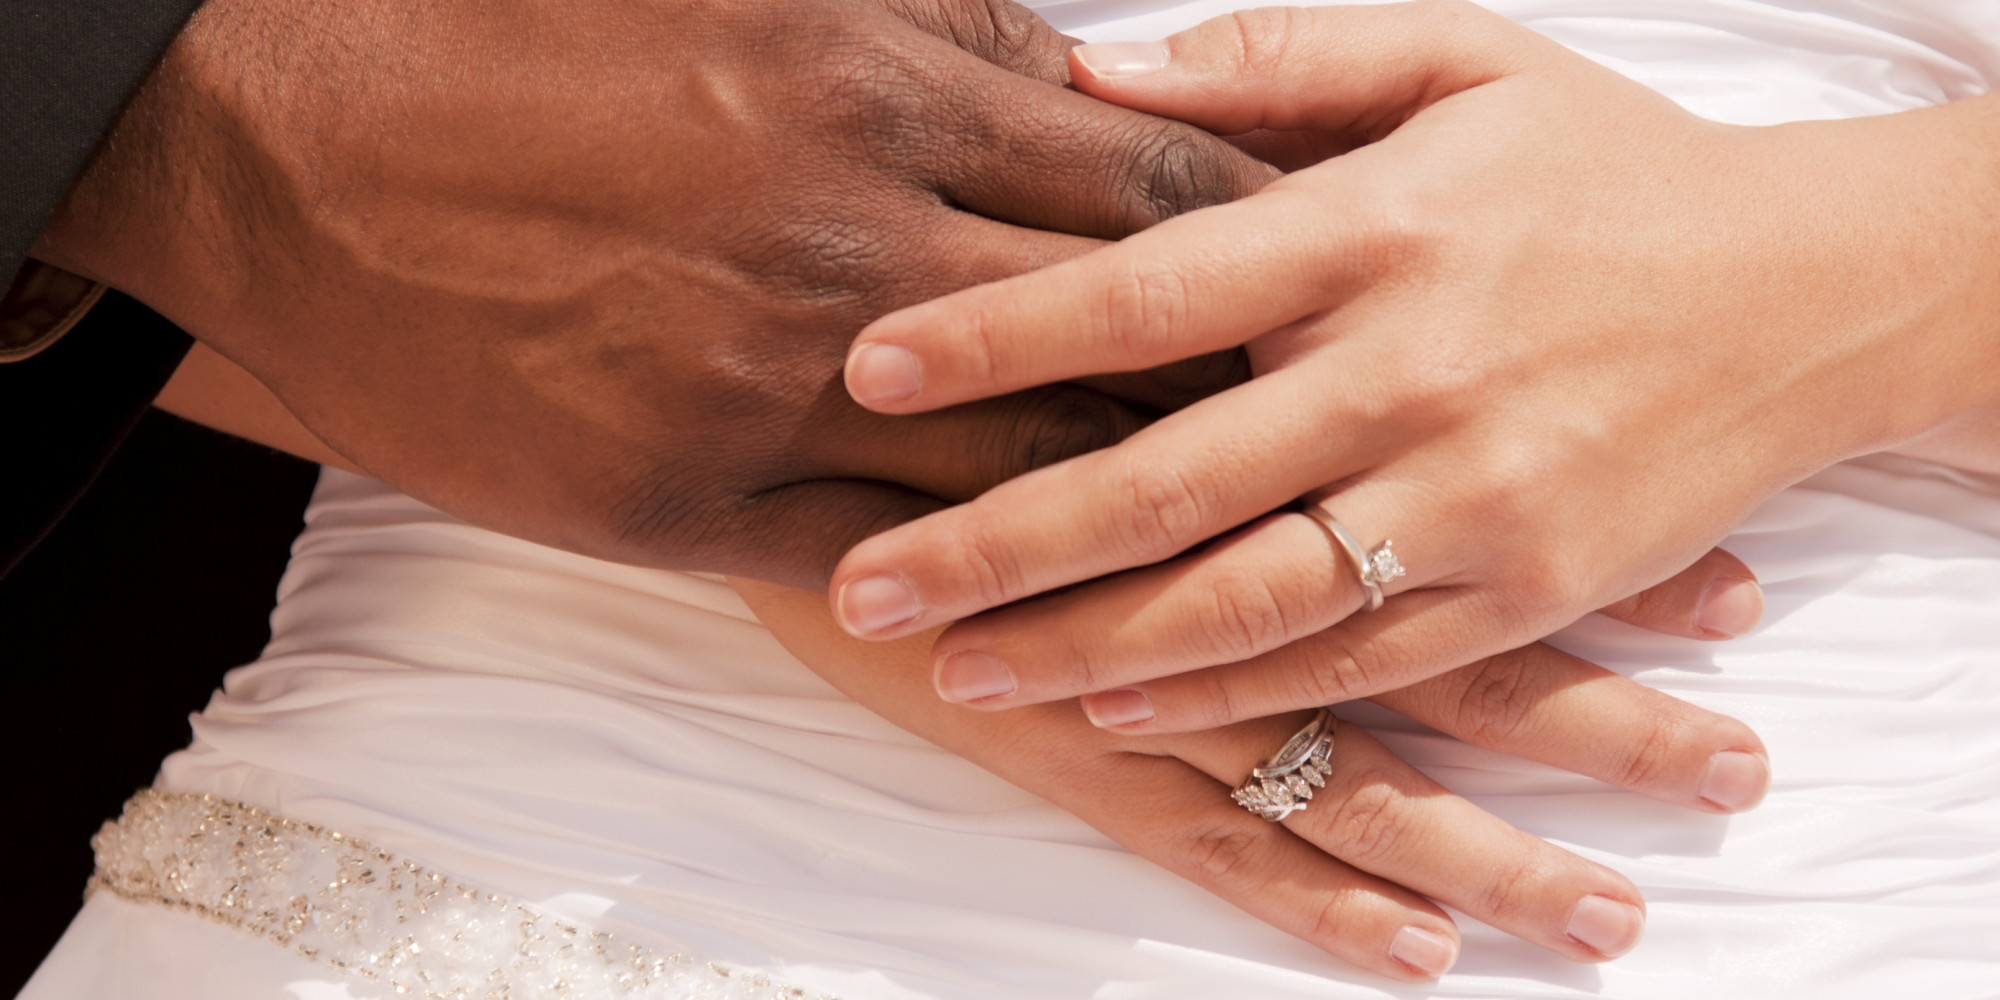 Interracial dating in greece